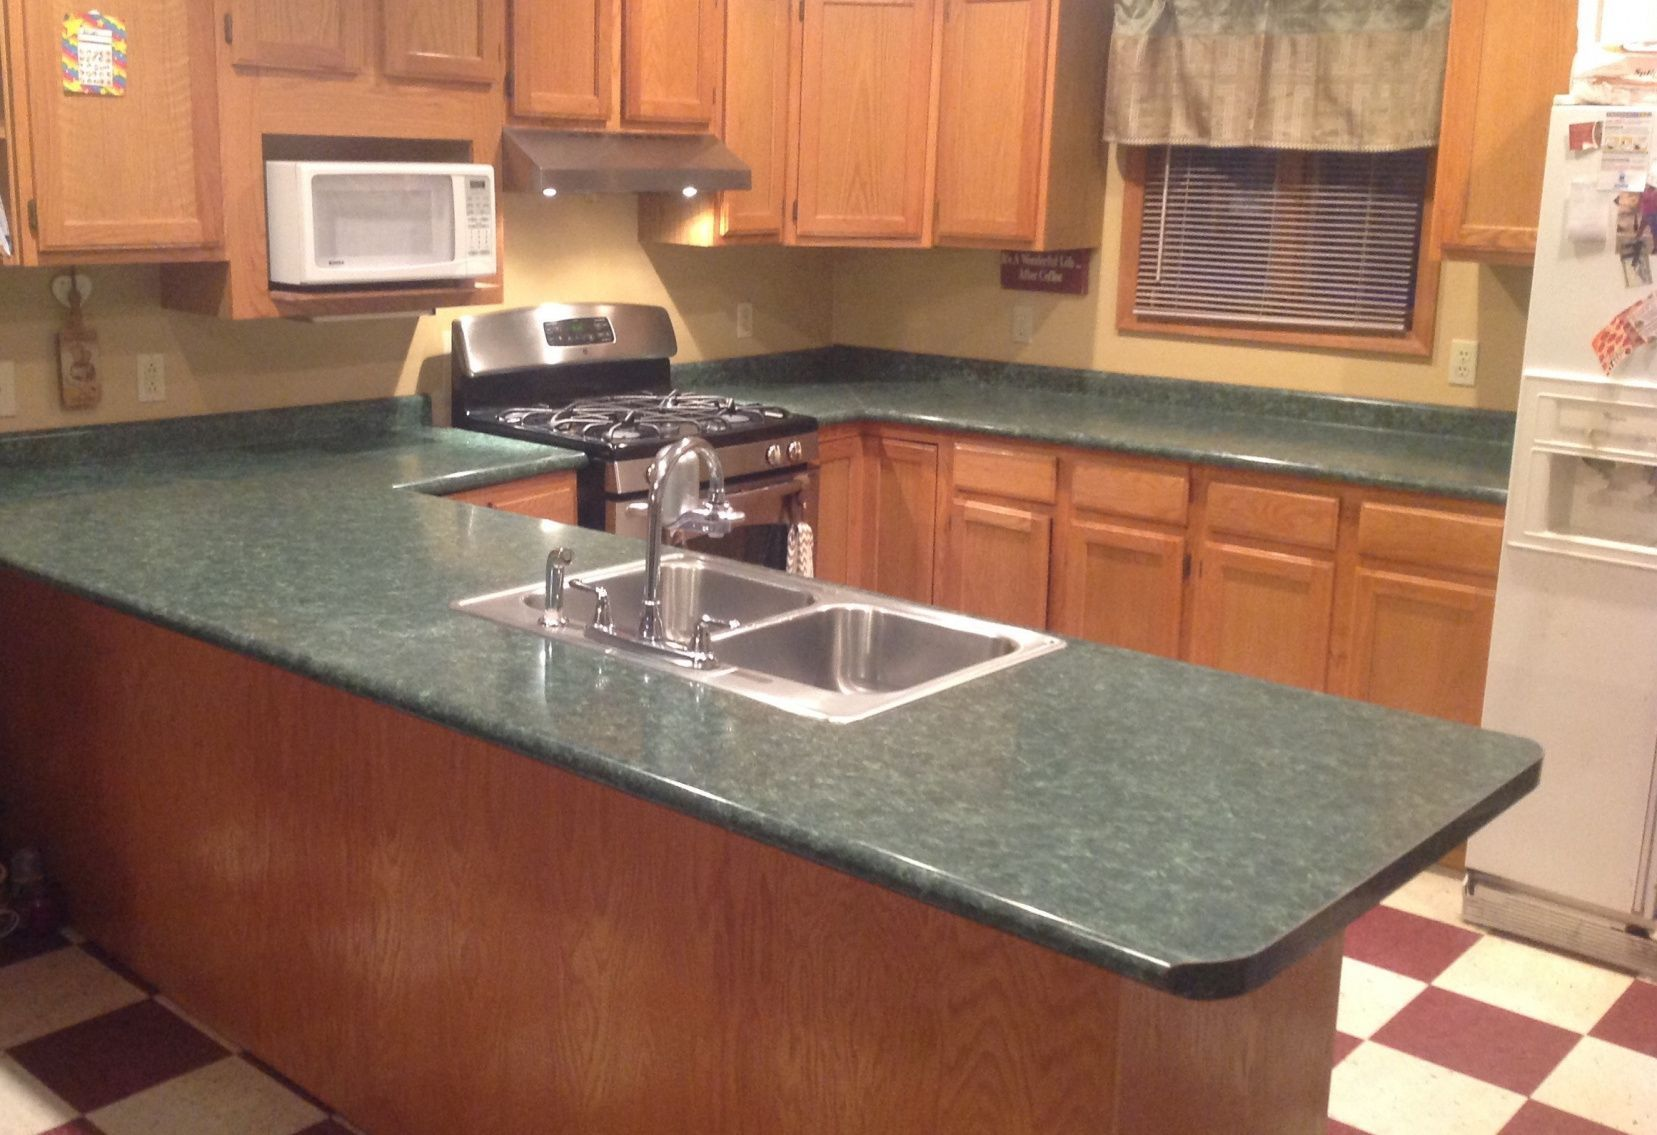 99+ Least Expensive Granite Countertops Cost   Kitchen Remodeling Ideas On  A Small Budget Check